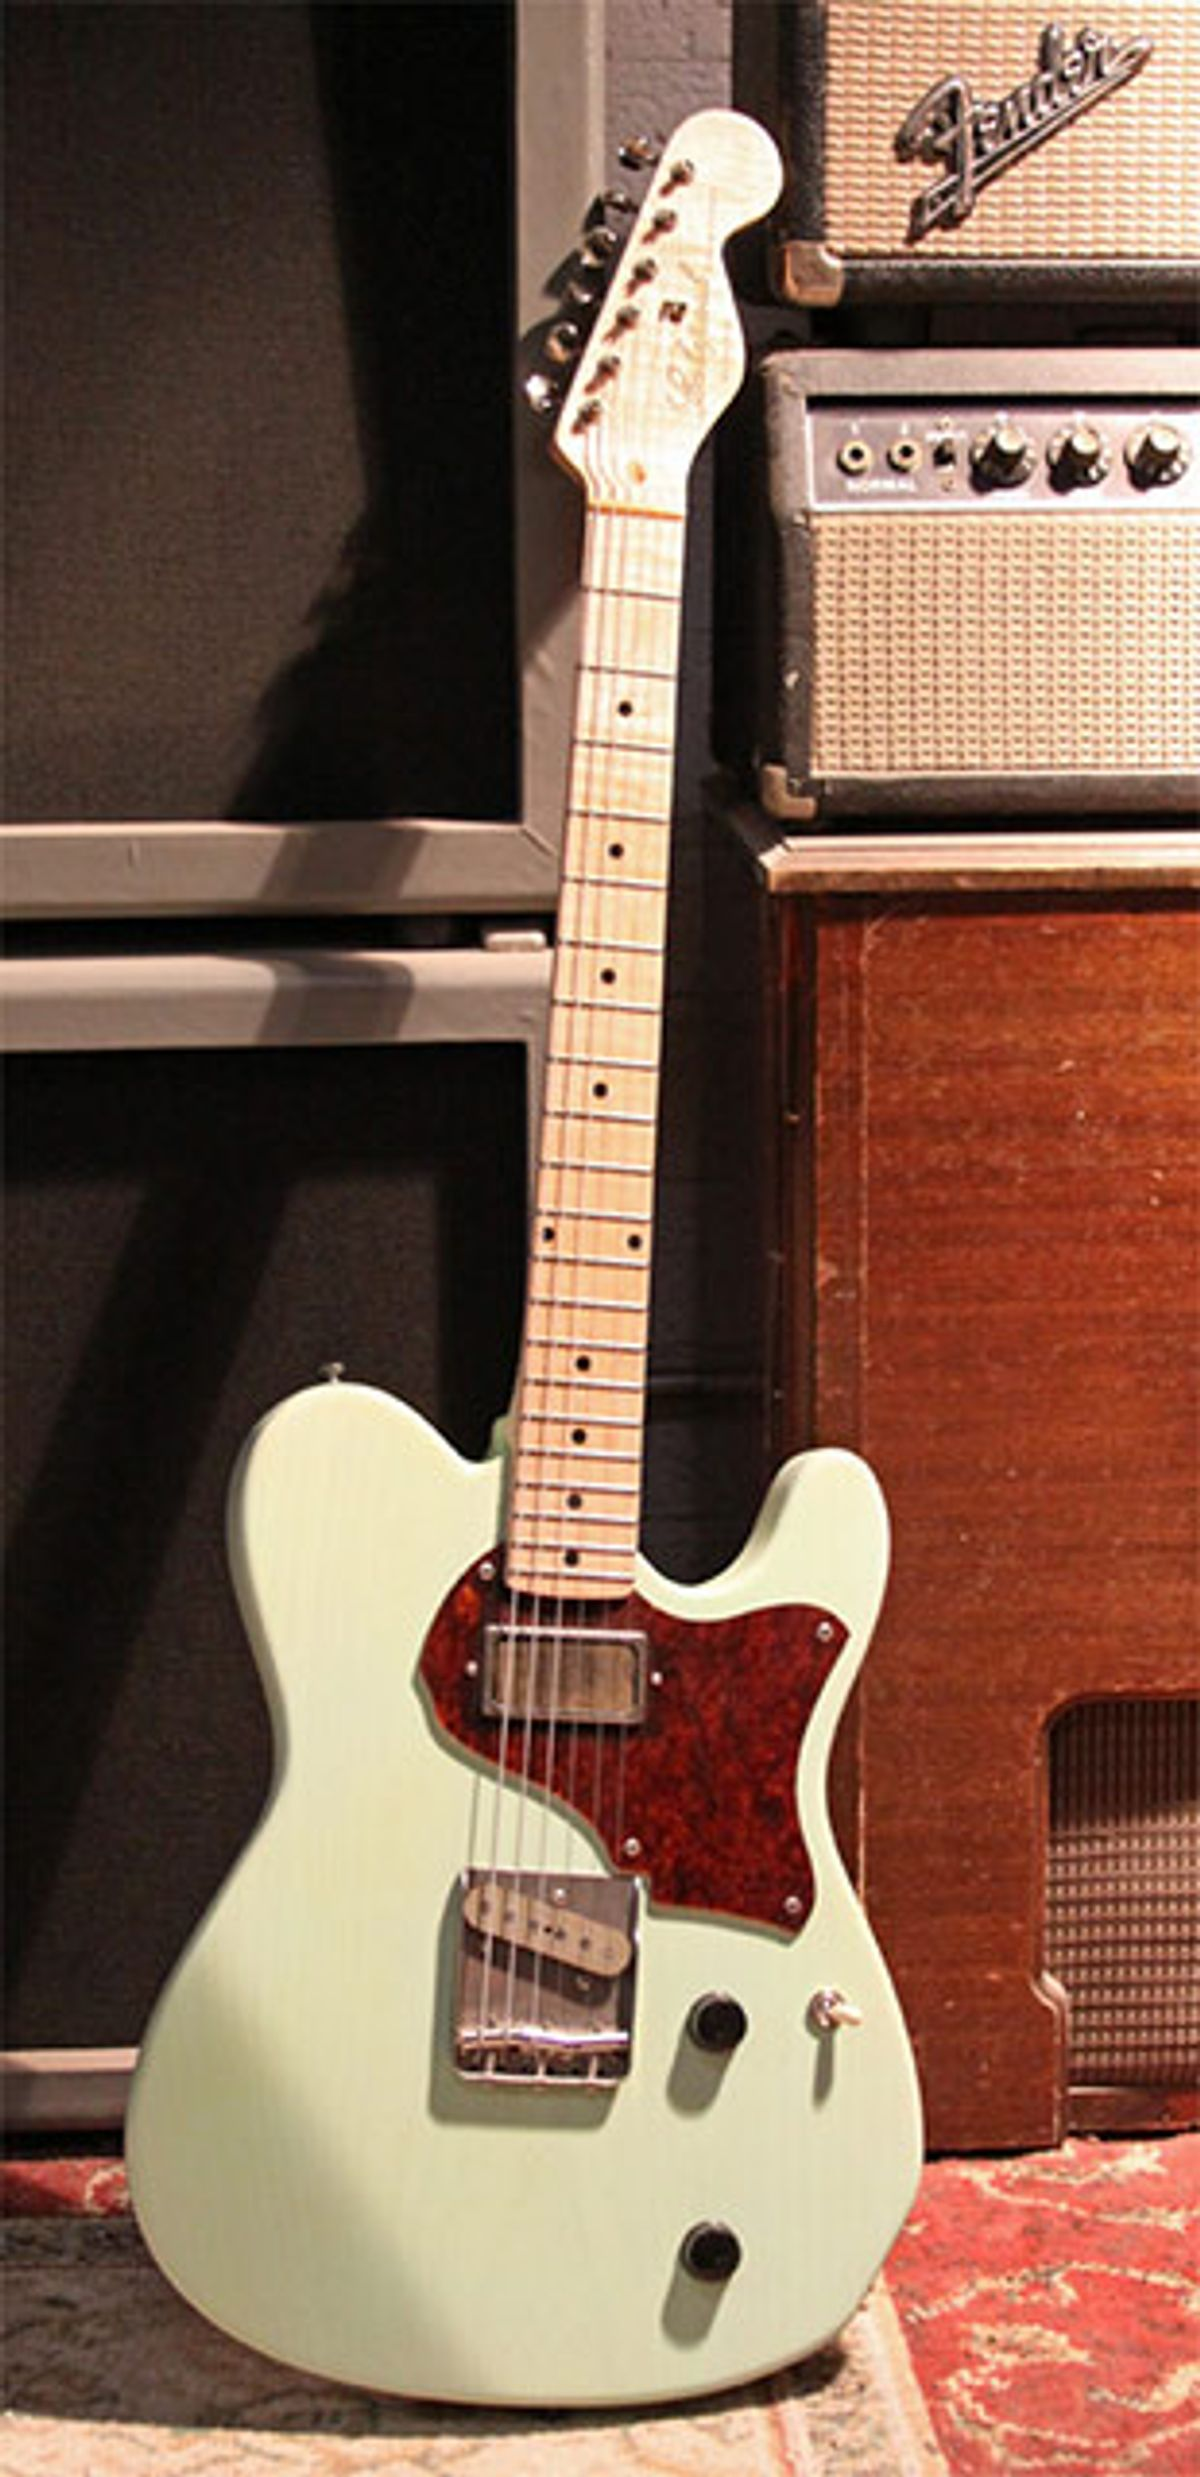 """Echopark Guitars Releases Clarence """"Gold Coil"""" Guitar"""